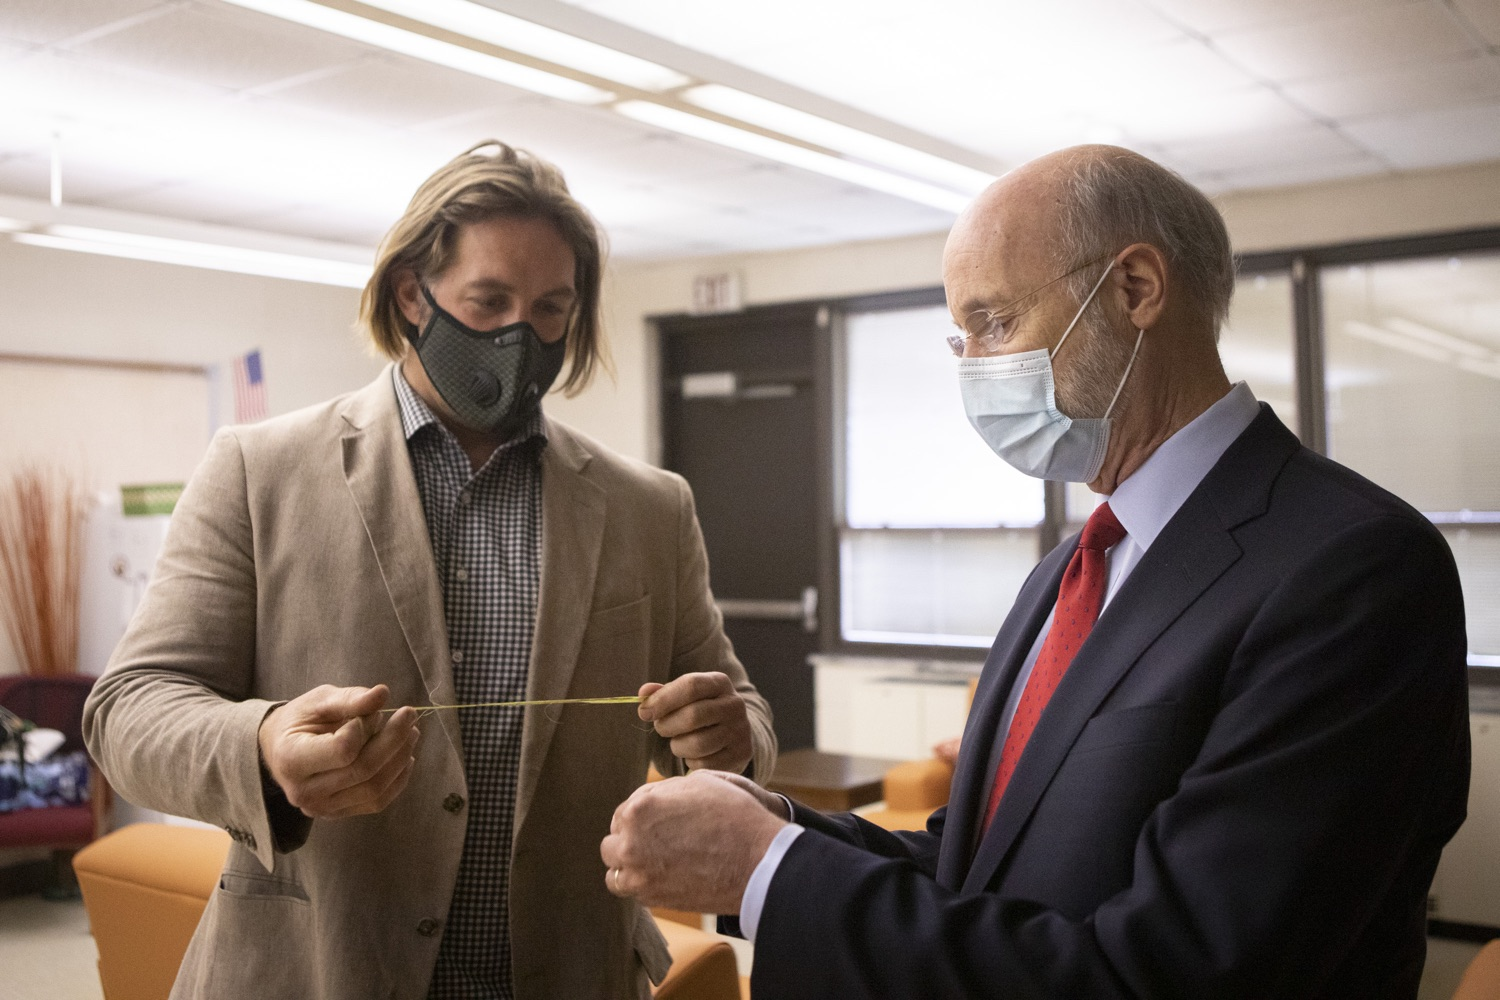 """<a href=""""https://filesource.wostreaming.net/commonwealthofpa/photo/18310_gov_adult_use_cannabis_dz_004.jpg"""" target=""""_blank"""">⇣Download Photo<br></a>Eric Titus White, hemp farmer showing Governor Tom Wolf a cutting of industrial hemp.  Governor Tom Wolf visited The Mountain Center in Tobyhanna, Monroe County today to talk about the economic growth potential and restorative justice benefits of legalizing adult-use cannabis, something the state General Assembly has not yet done despite multiple requests from the governor and Lieutenant Governor John Fetterman to take up legislation this fall.  Tobyhanna, PA  October 13, 2020"""